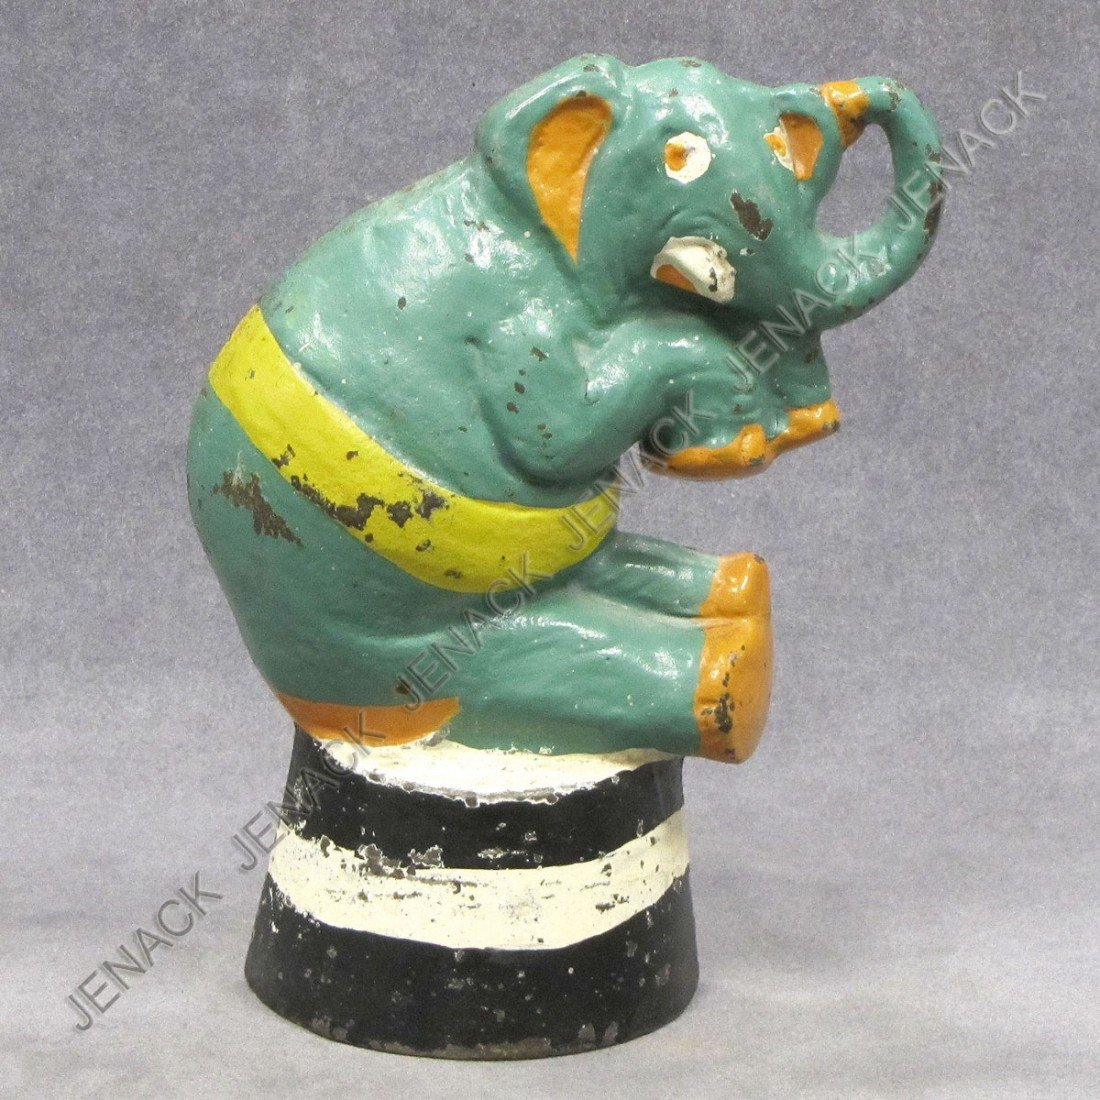 13: VINTAGE TAYLOR COOK #2 CAST IRON PAINTED ELEPHANT